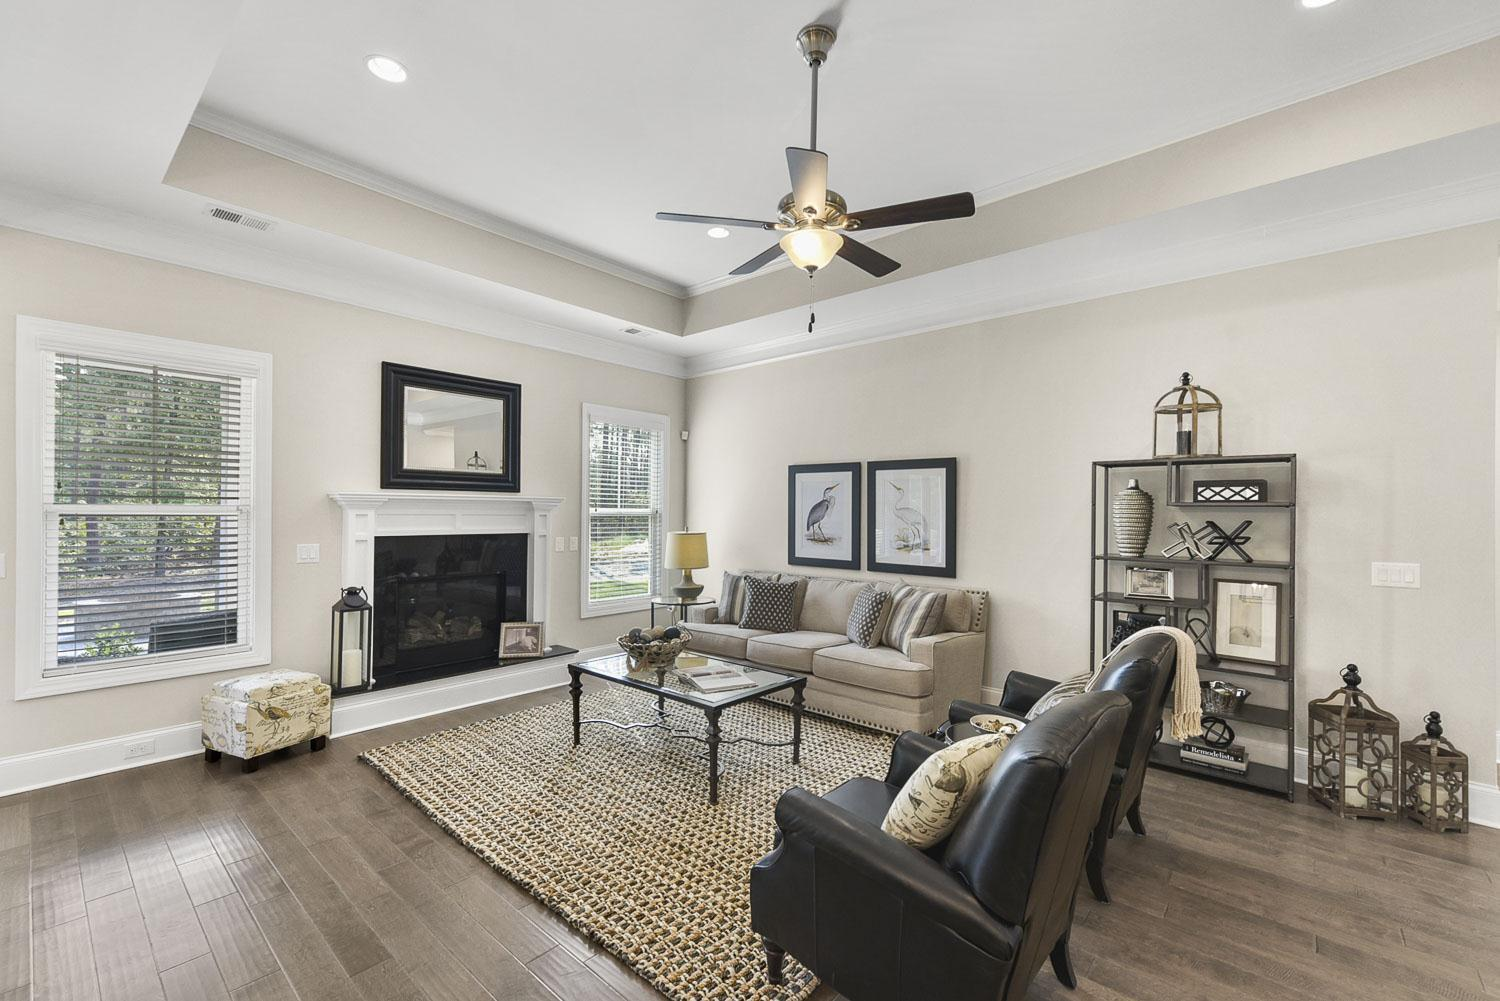 Living Area featured in the Northwood Villas-Sawgrass III By Executive Construction Homes